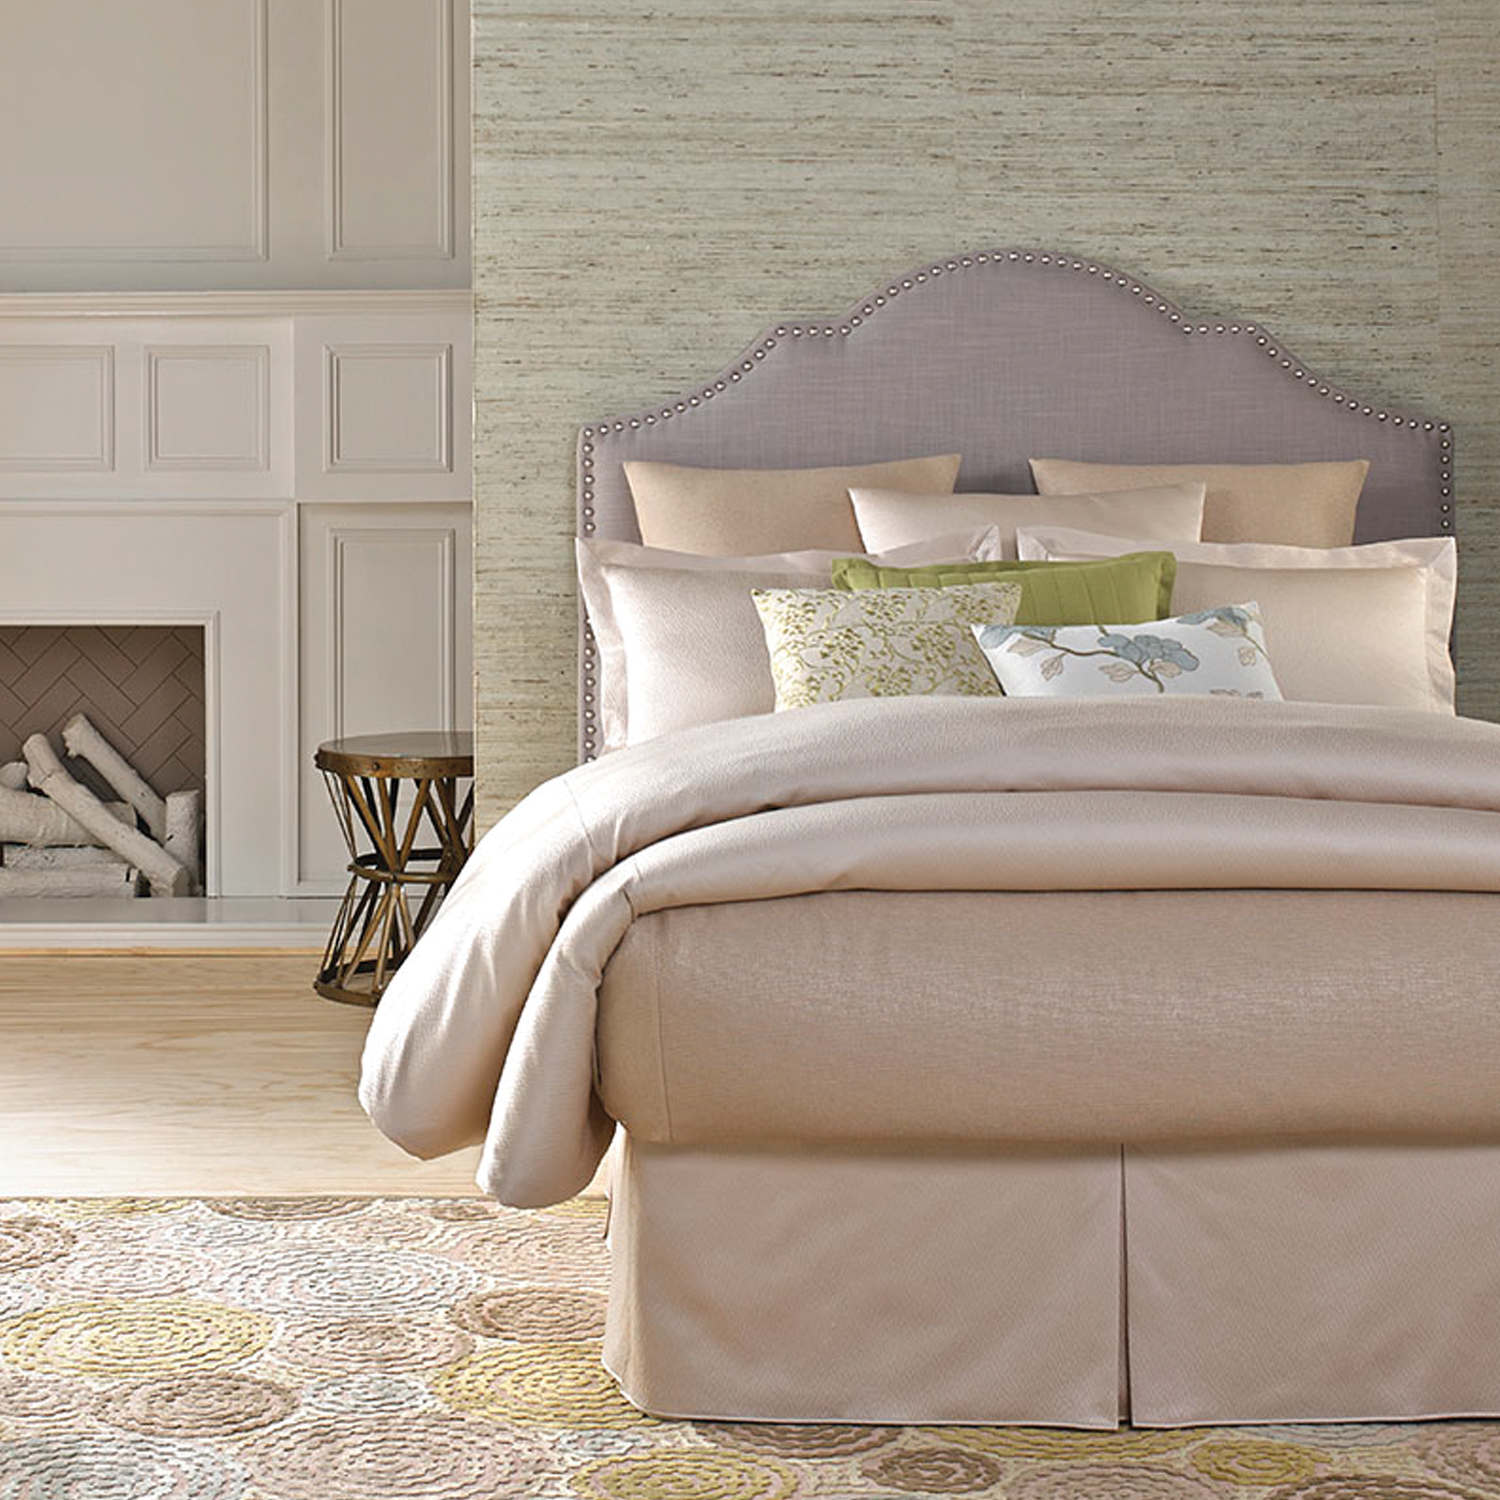 wildcat territory bedding skyler cameo collection -